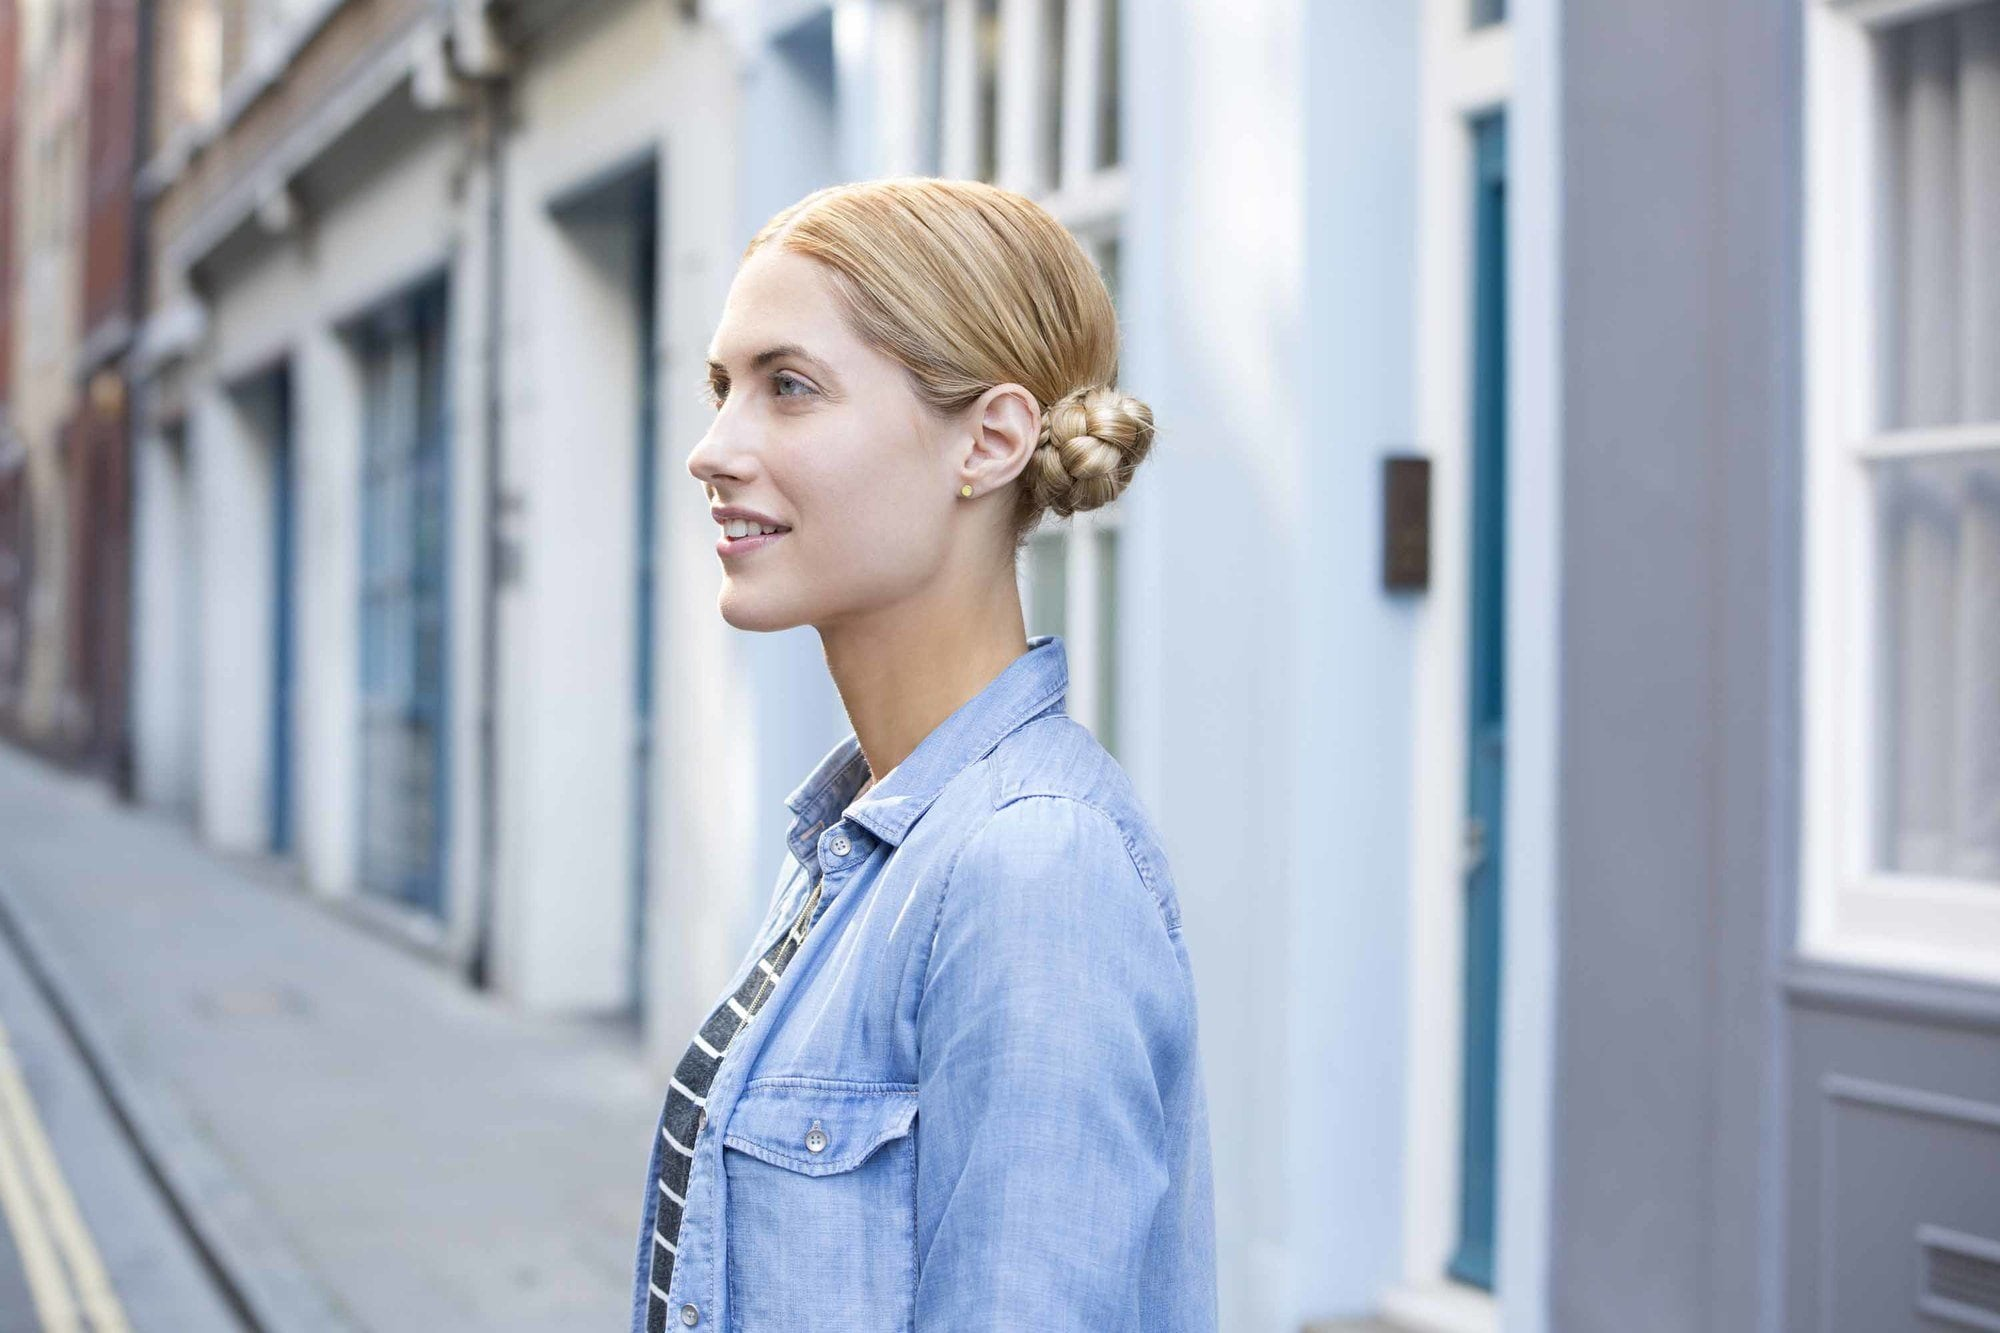 close up shot of woman outside with braided low macaron bun hairstyles, wearing denim and sporty clothing